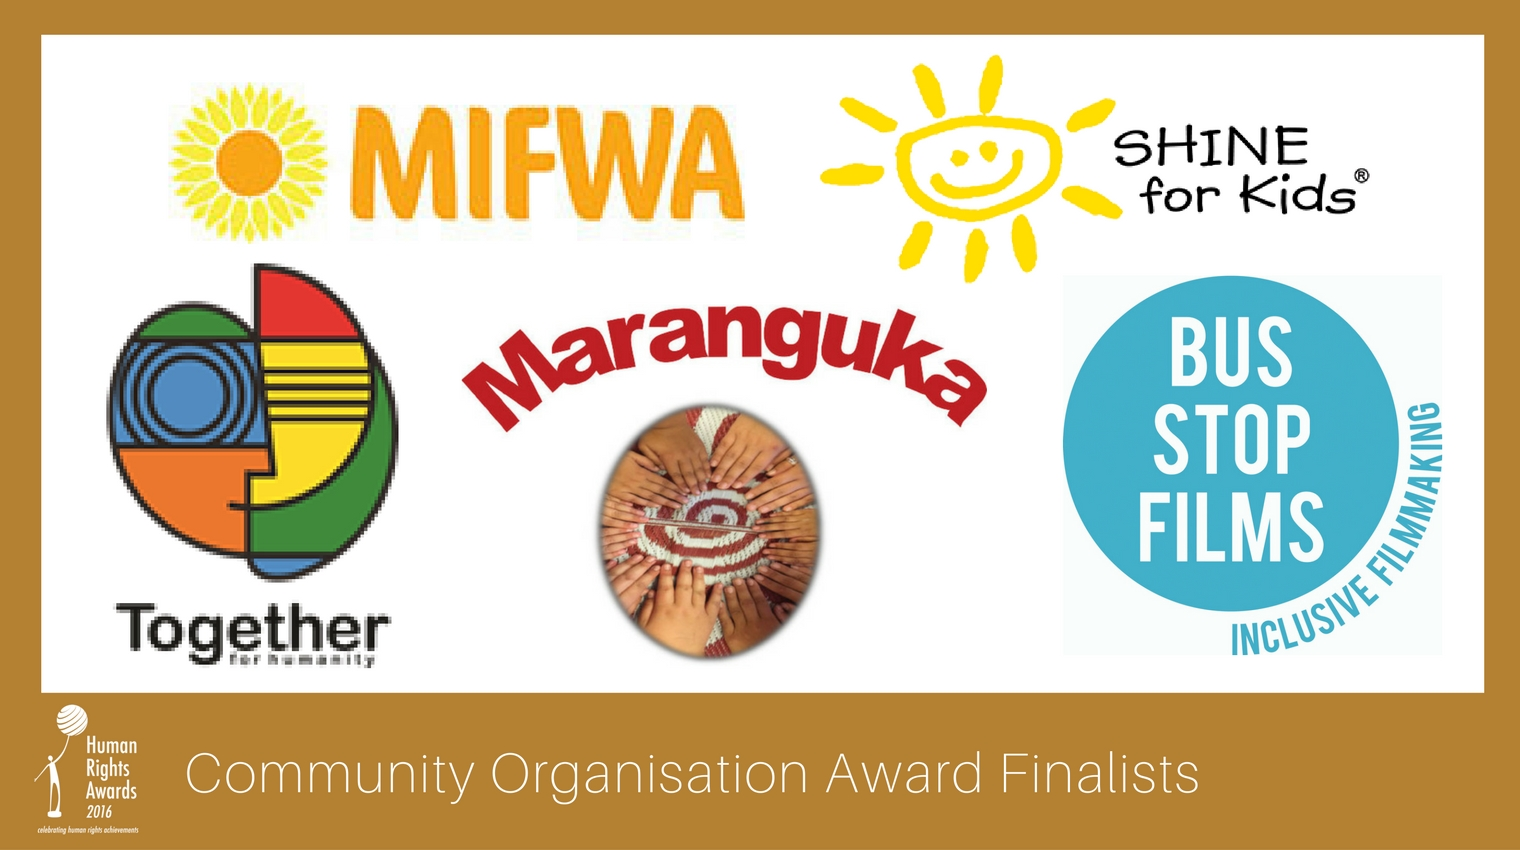 Composite of Community Organisation Award finalist logos